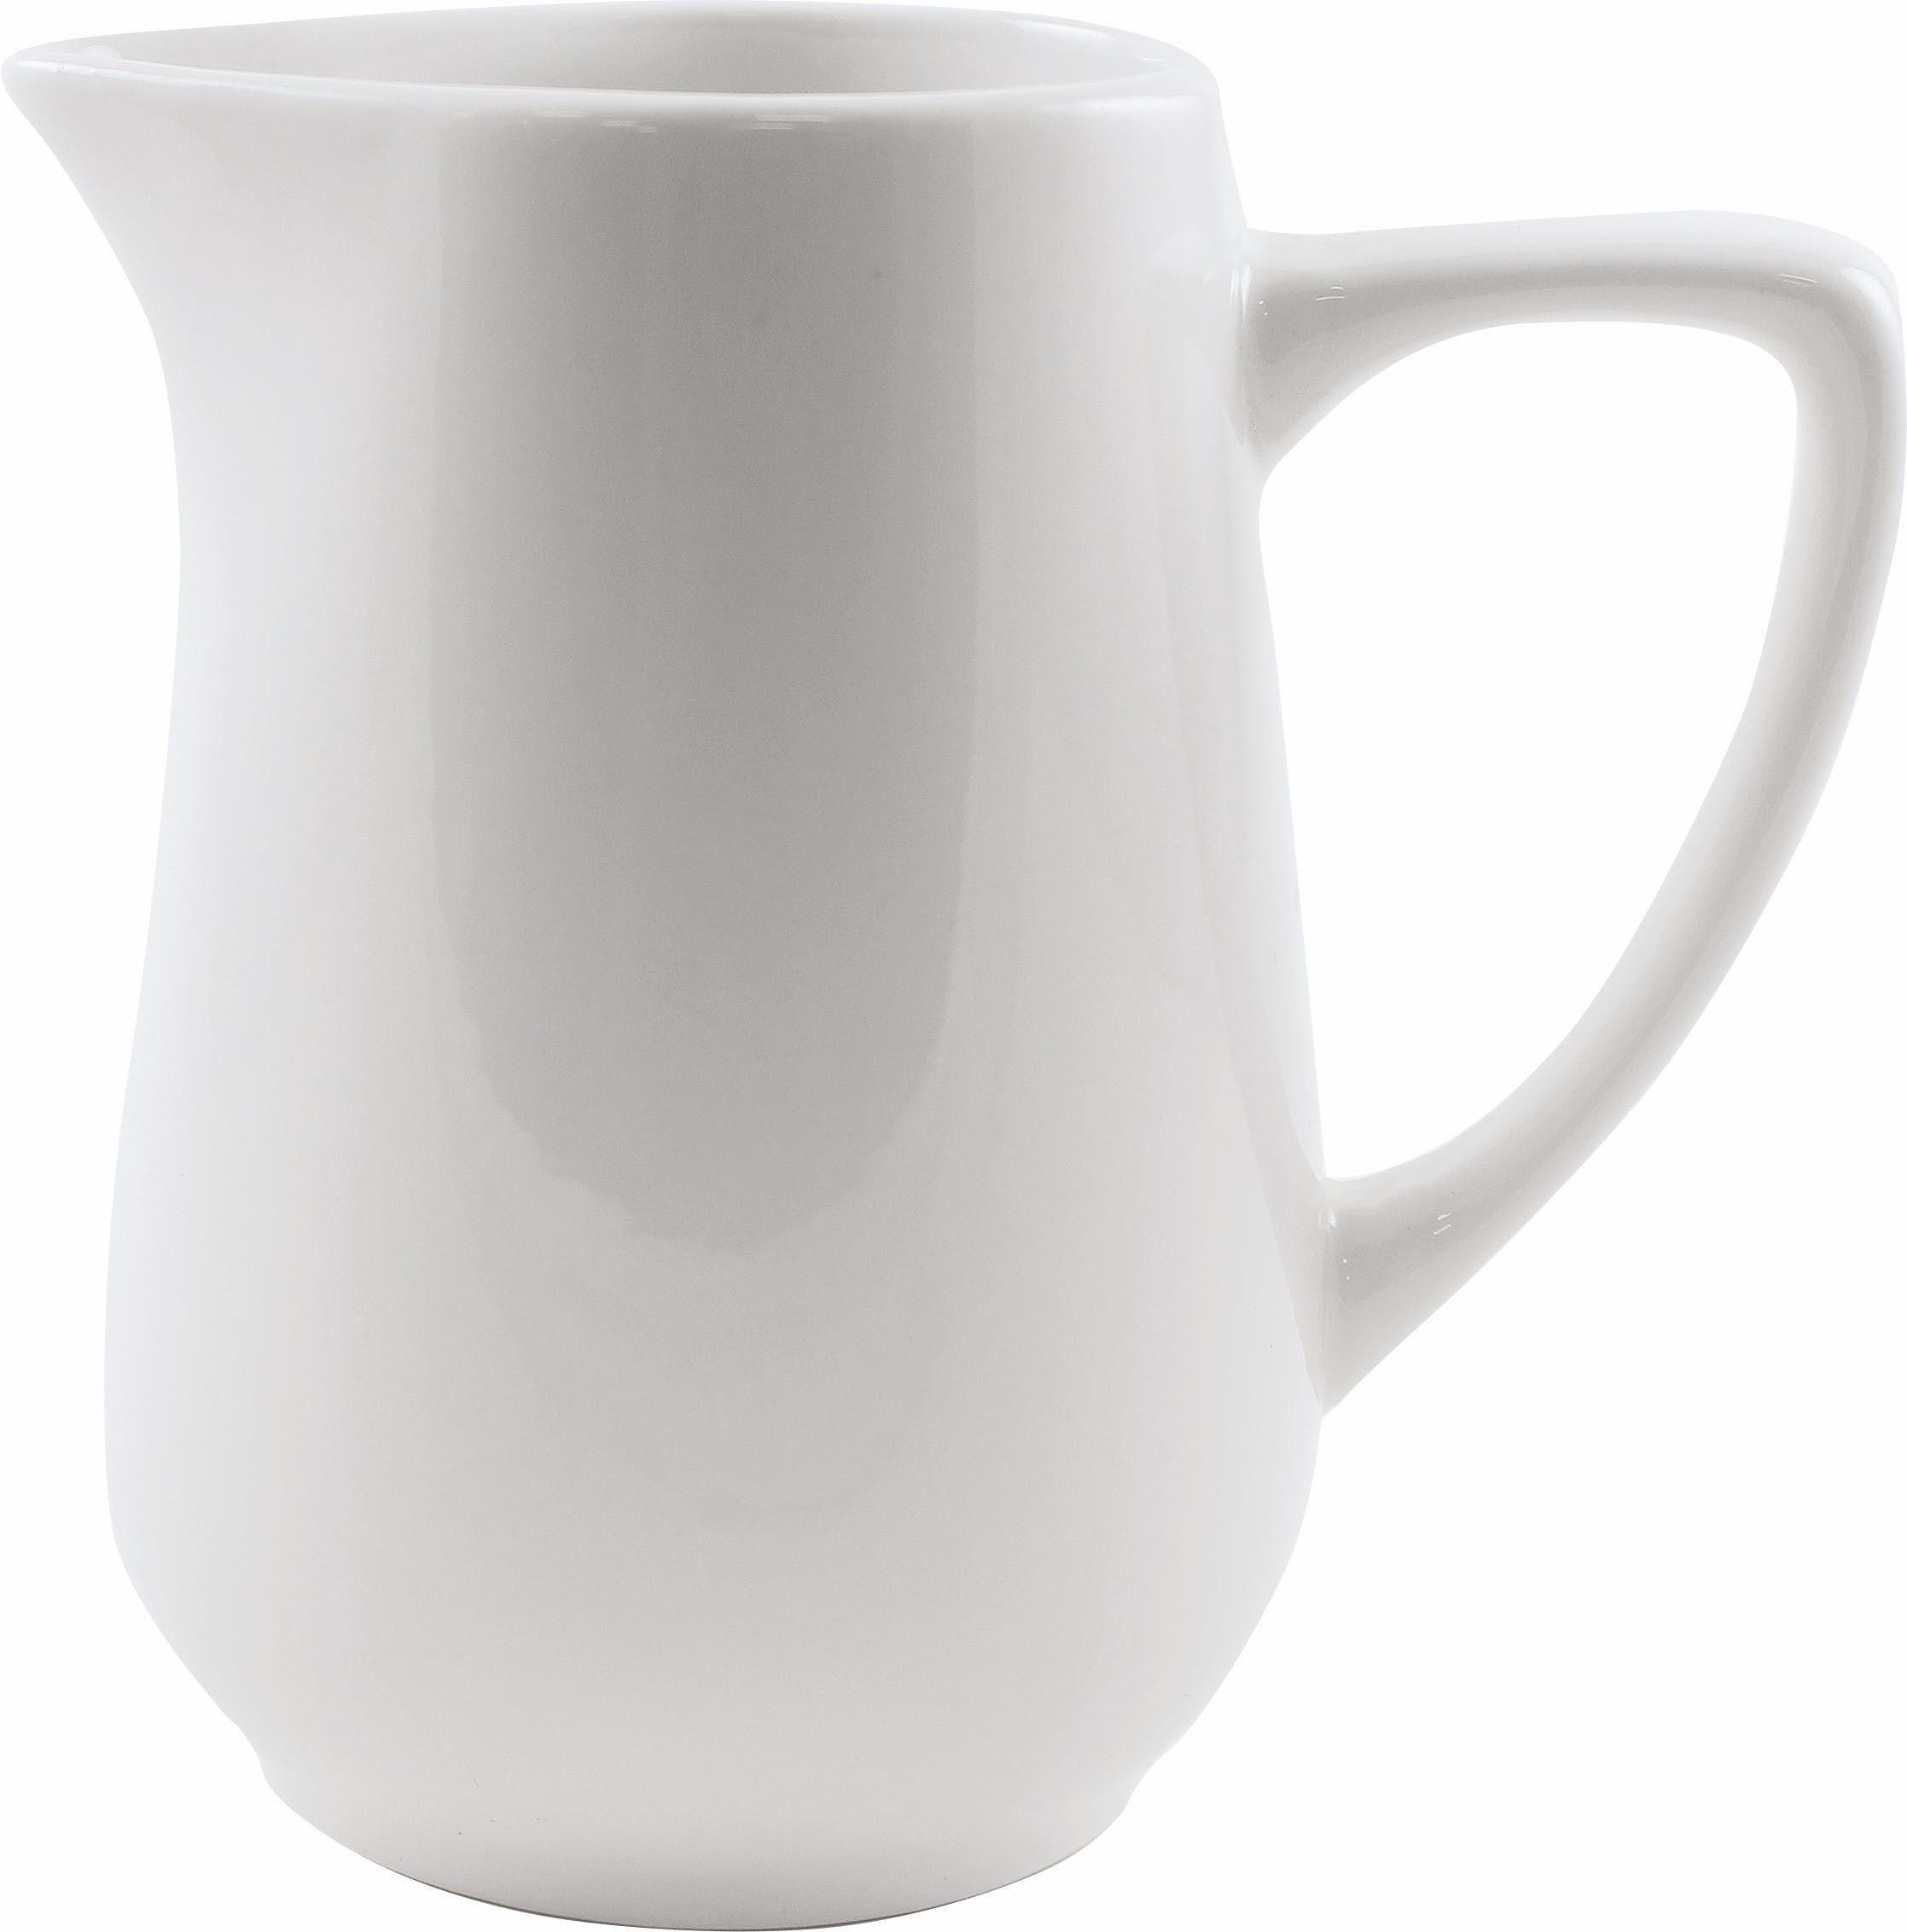 12.5 oz. Dover White Porcelain Creamer Plate sold by Prestige Glassware